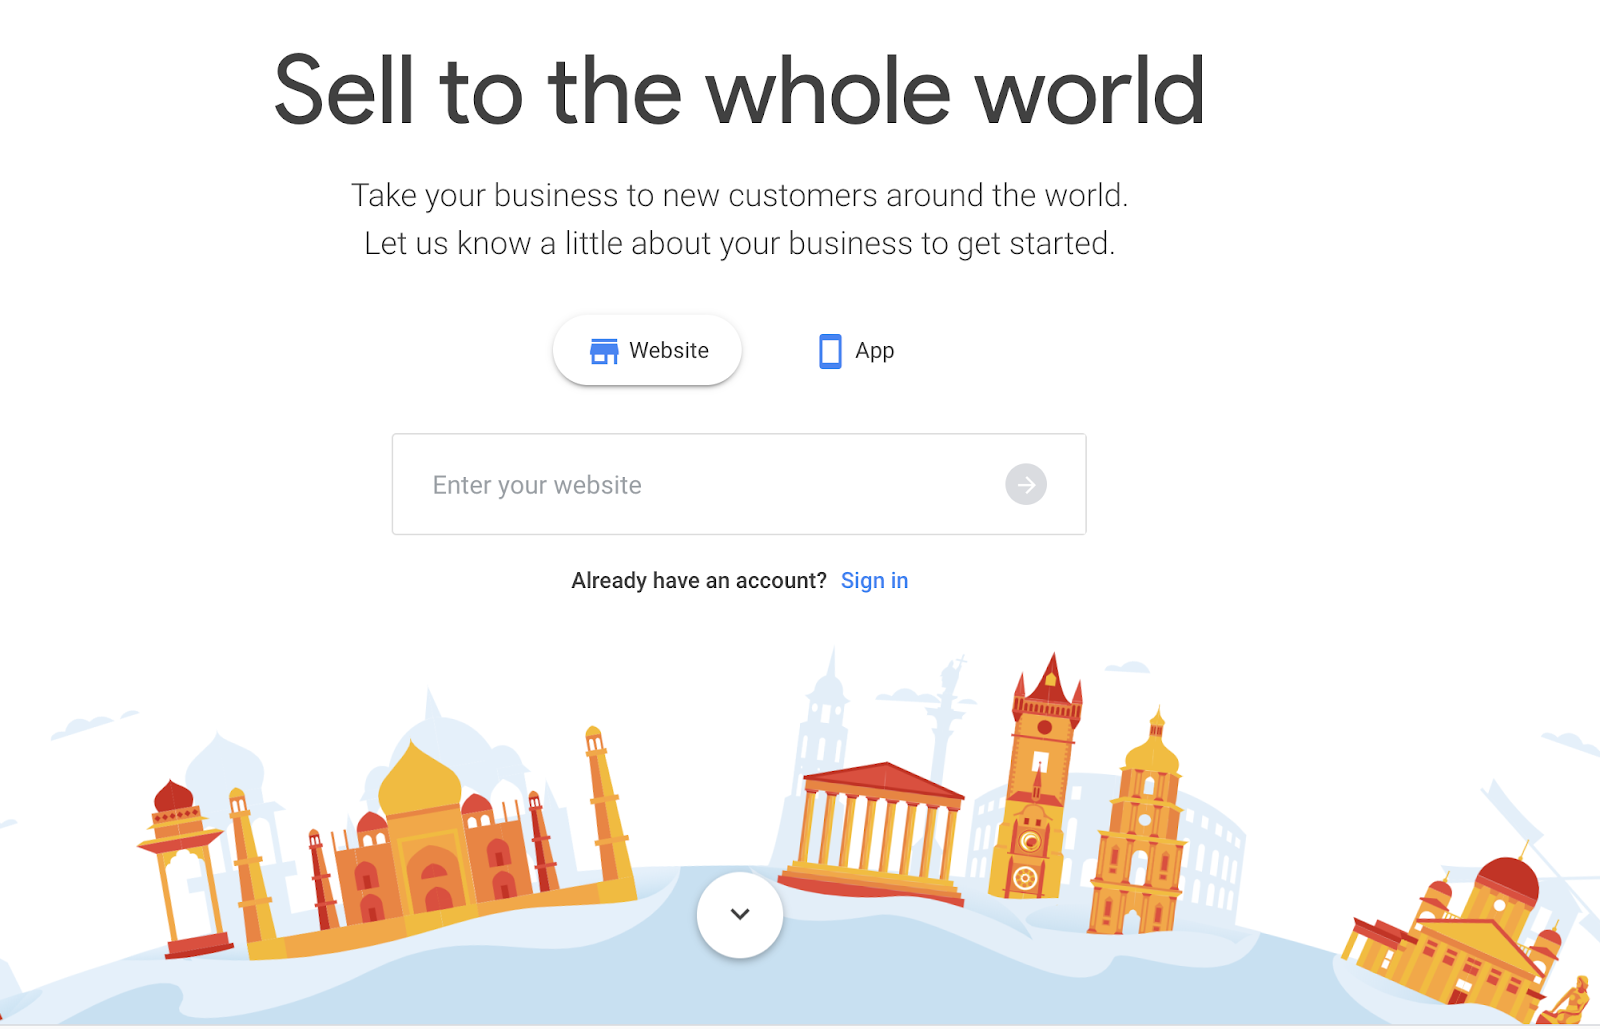 Google Market Finder 5 tips for companies looking to succeed with multilingual ppc campaigns - how google tools can help you export internationally 5 tips for companies looking to succeed with multilingual PPC campaigns – How Google Tools can help you export internationally blog